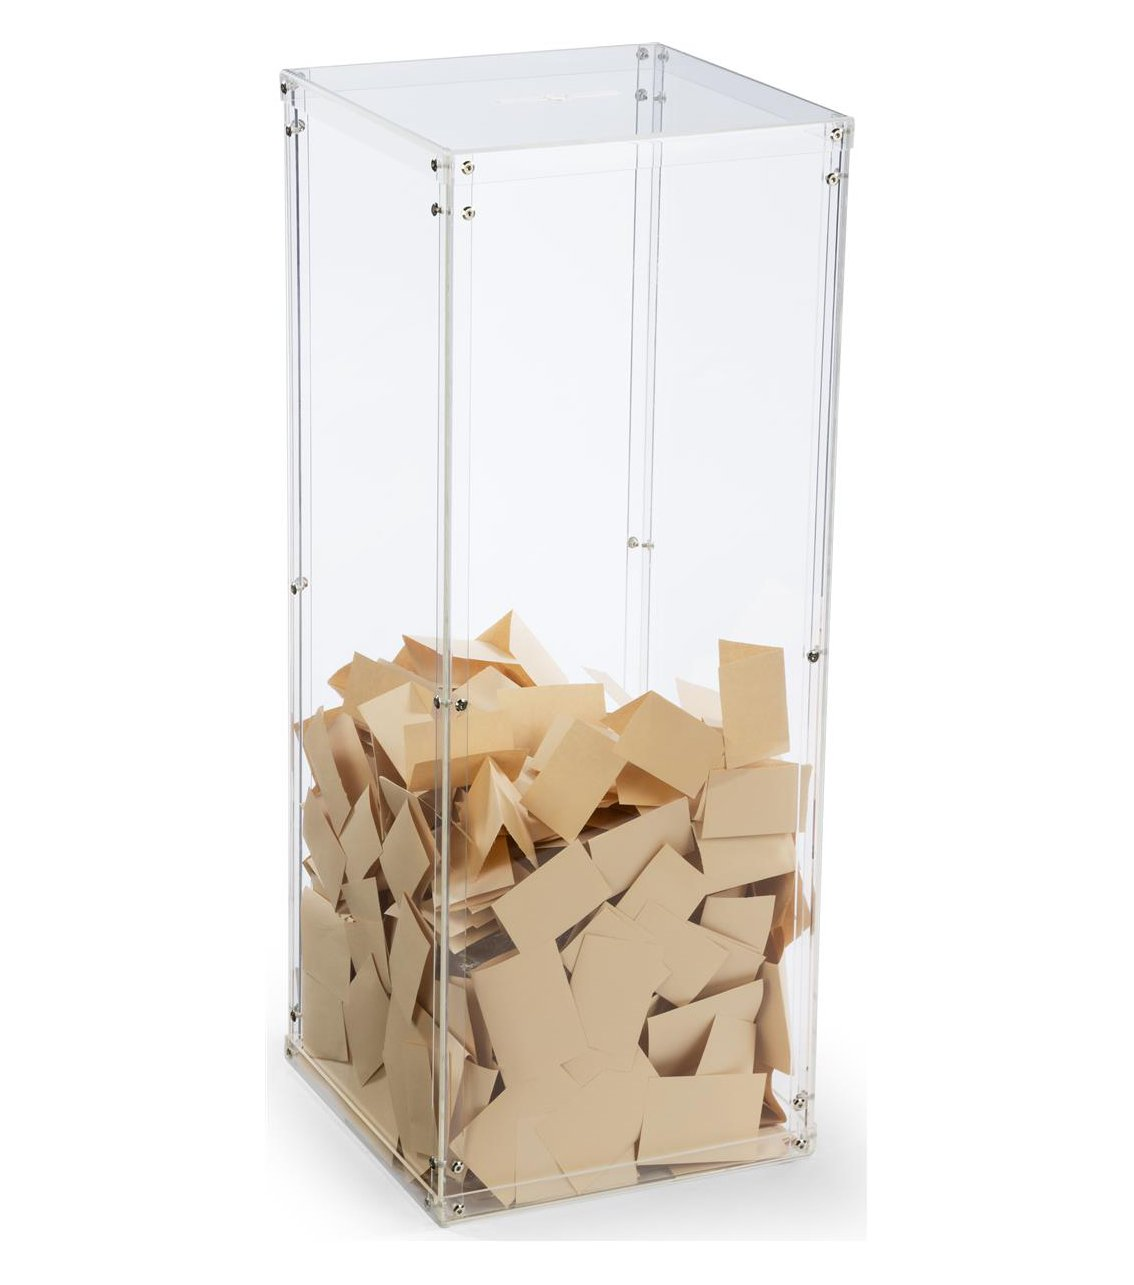 Fixture Displays Clear Plexiglass Acrylic Transparent Donation Box, Fund Raising Stand Display, Tithing Box 13192 13192!